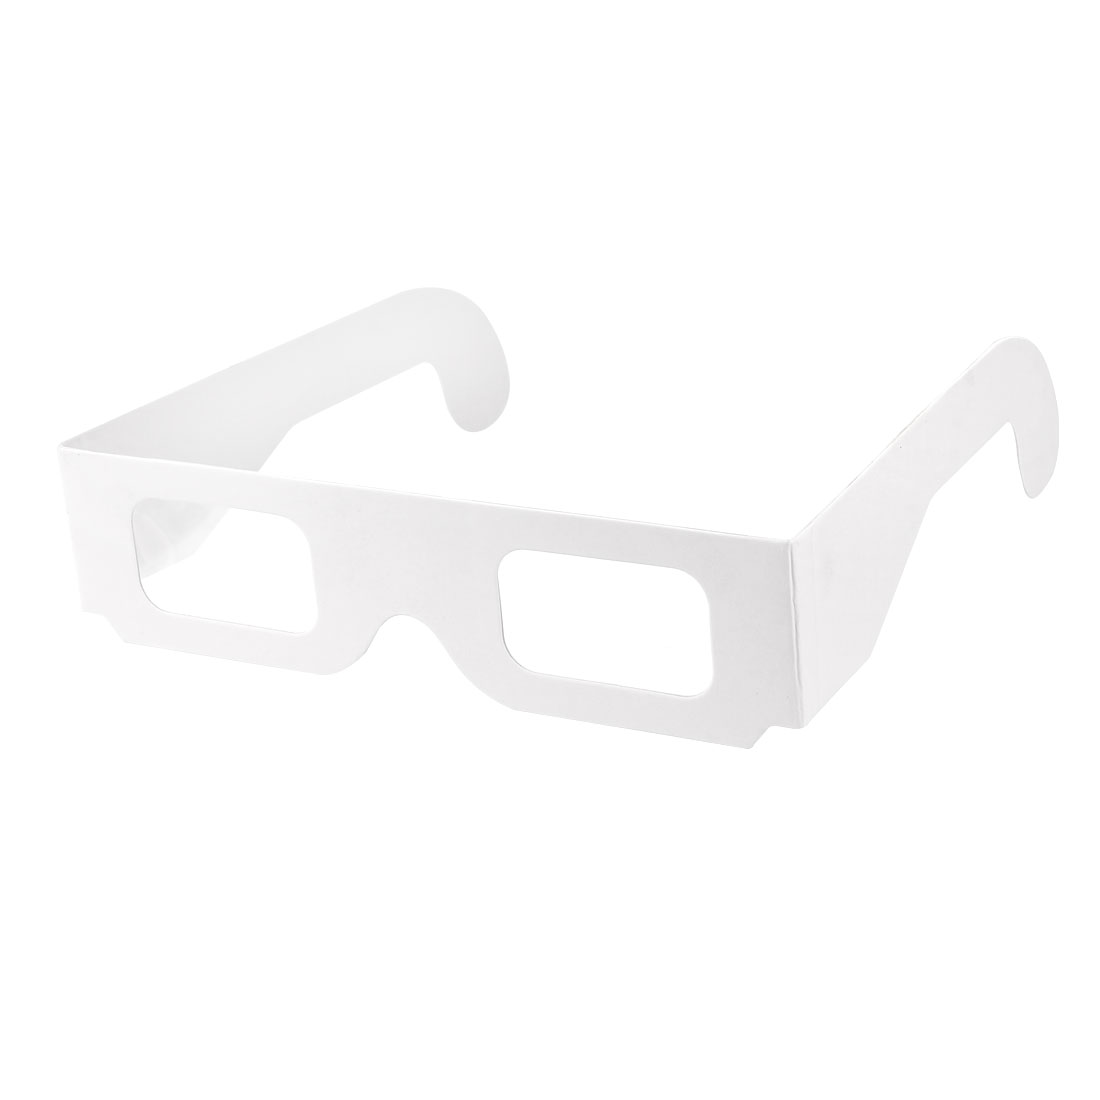 Paper Cardboard Diffraction Glasses White Foldable Frame See Colorful Rainbows